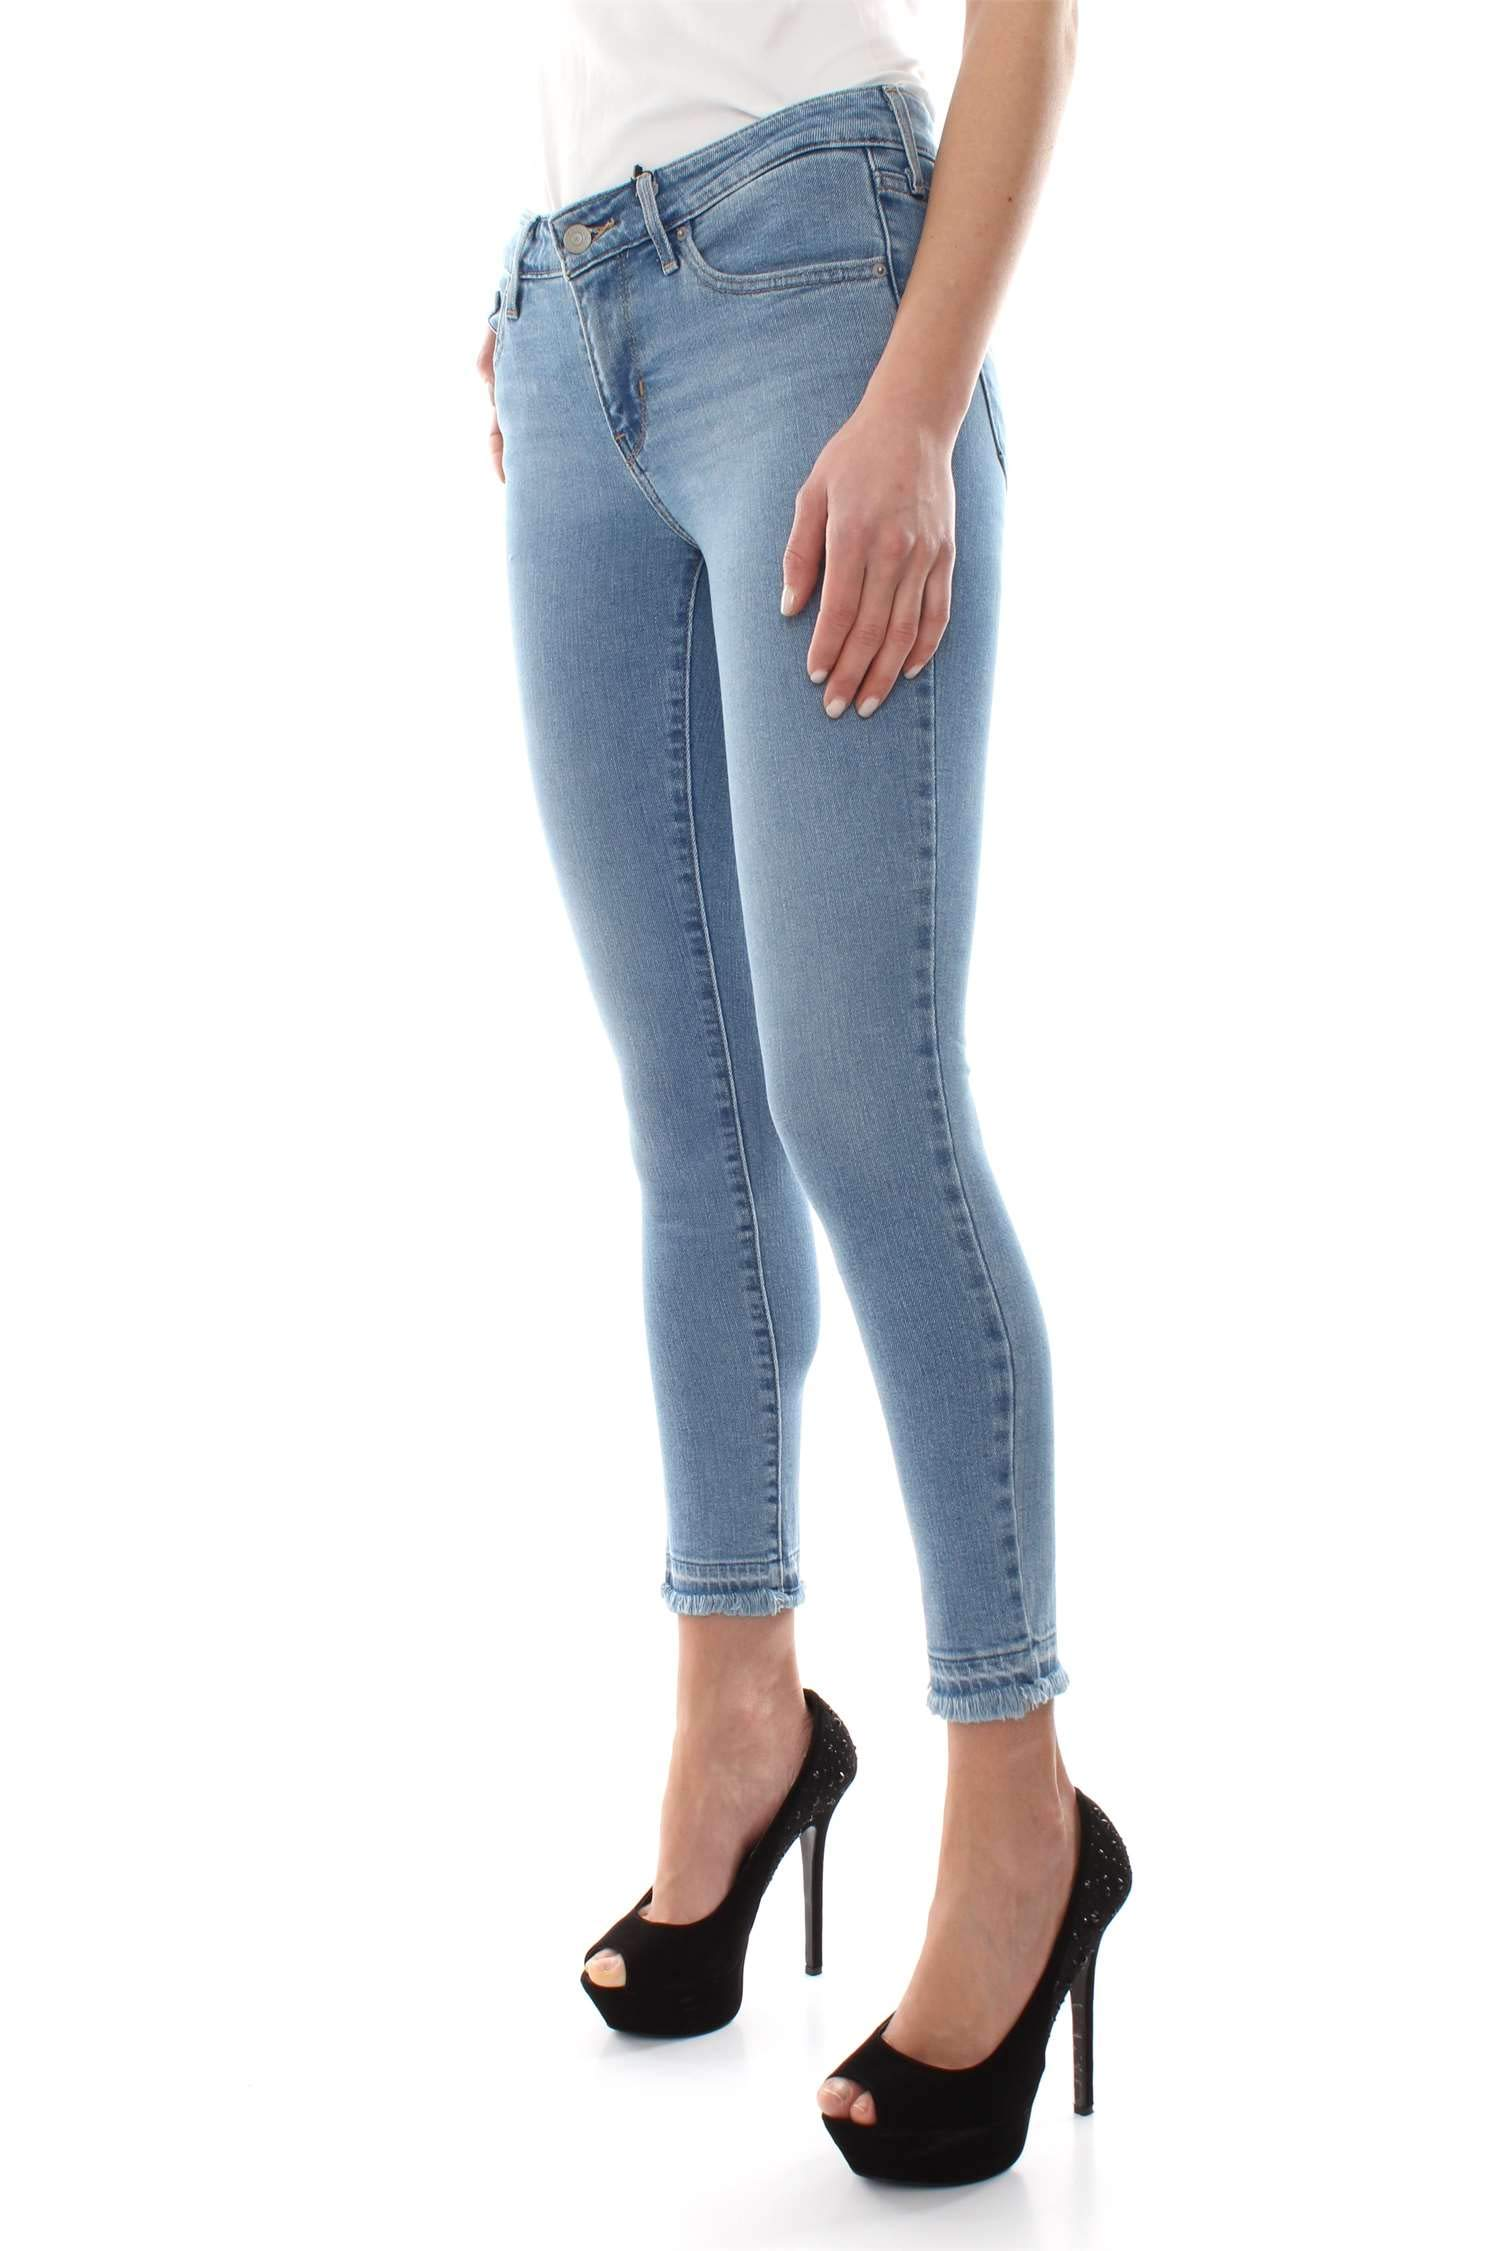 Levi's Levis 19558 711 Skinni Ankle Vaqueros Mujer nd 26